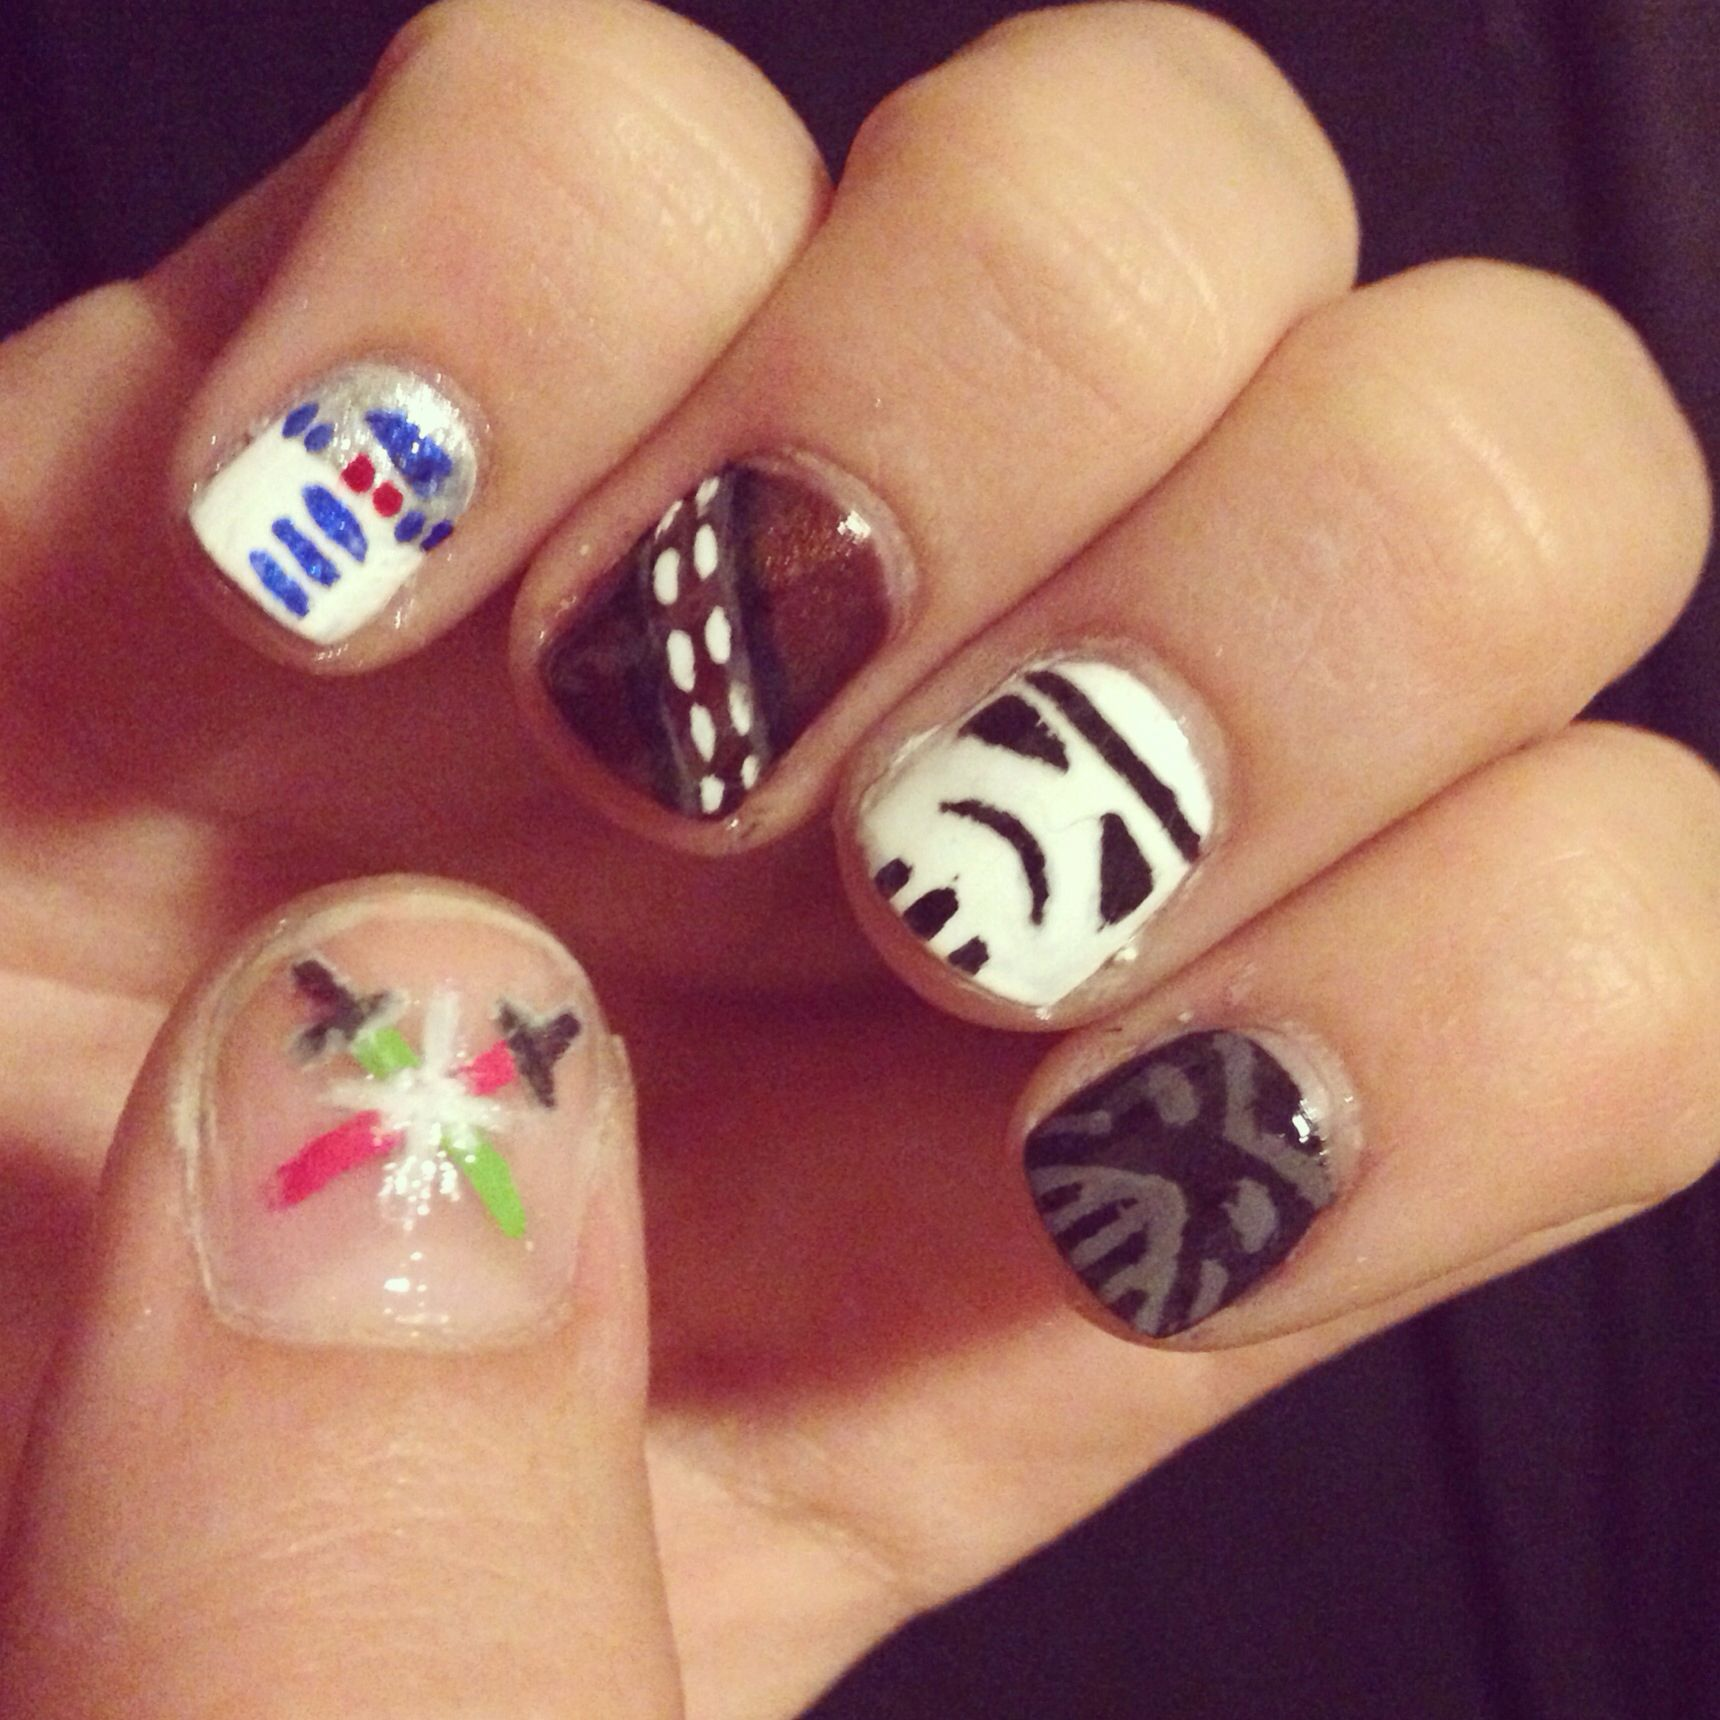 Star Wars nails #nails #nailart #starwars #chewbacca #stormtrooper ...